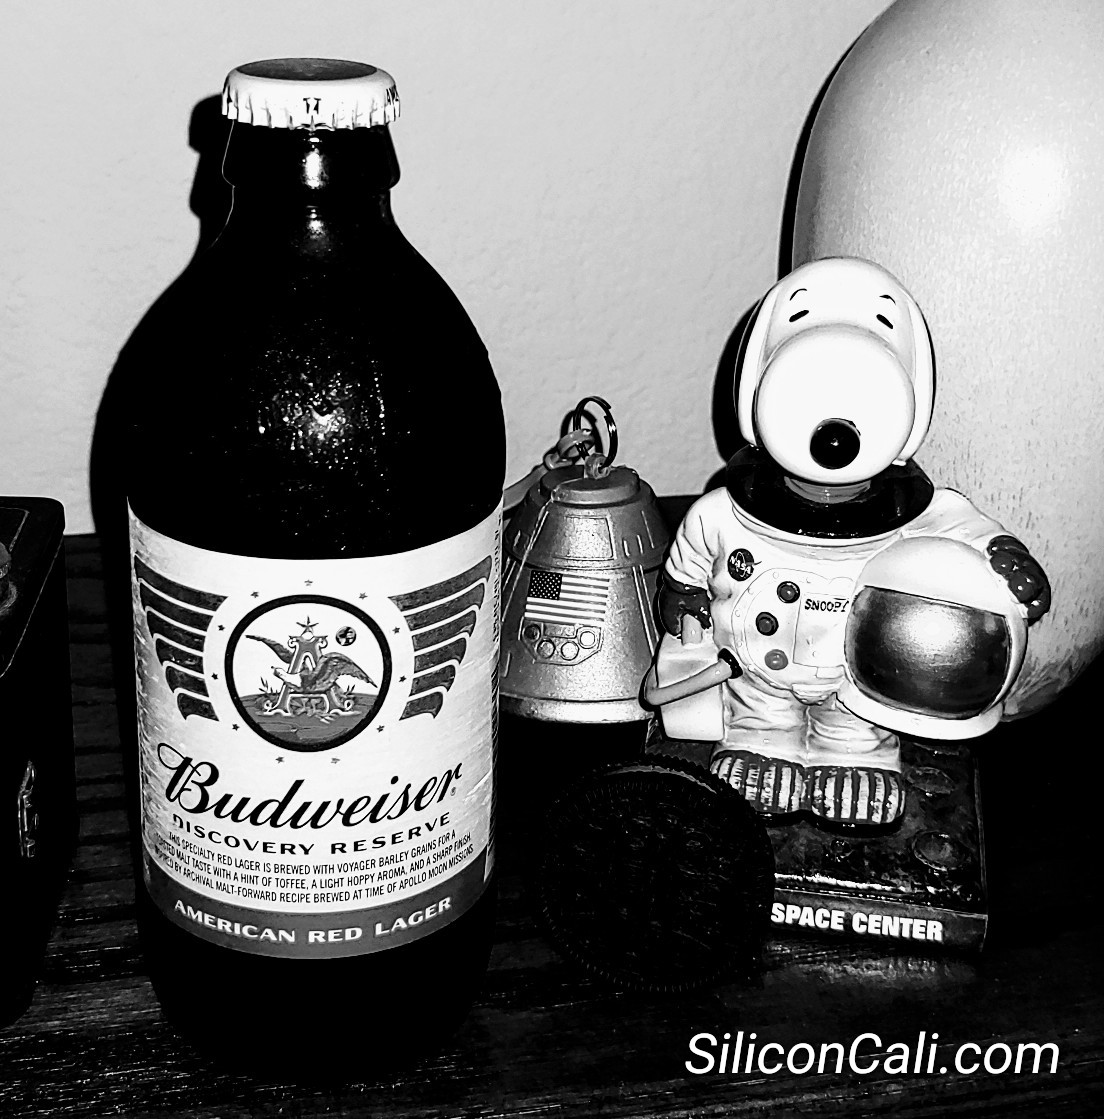 Budweiser_Discovery_Reserve_Snoopy_on_the_Moon_50th